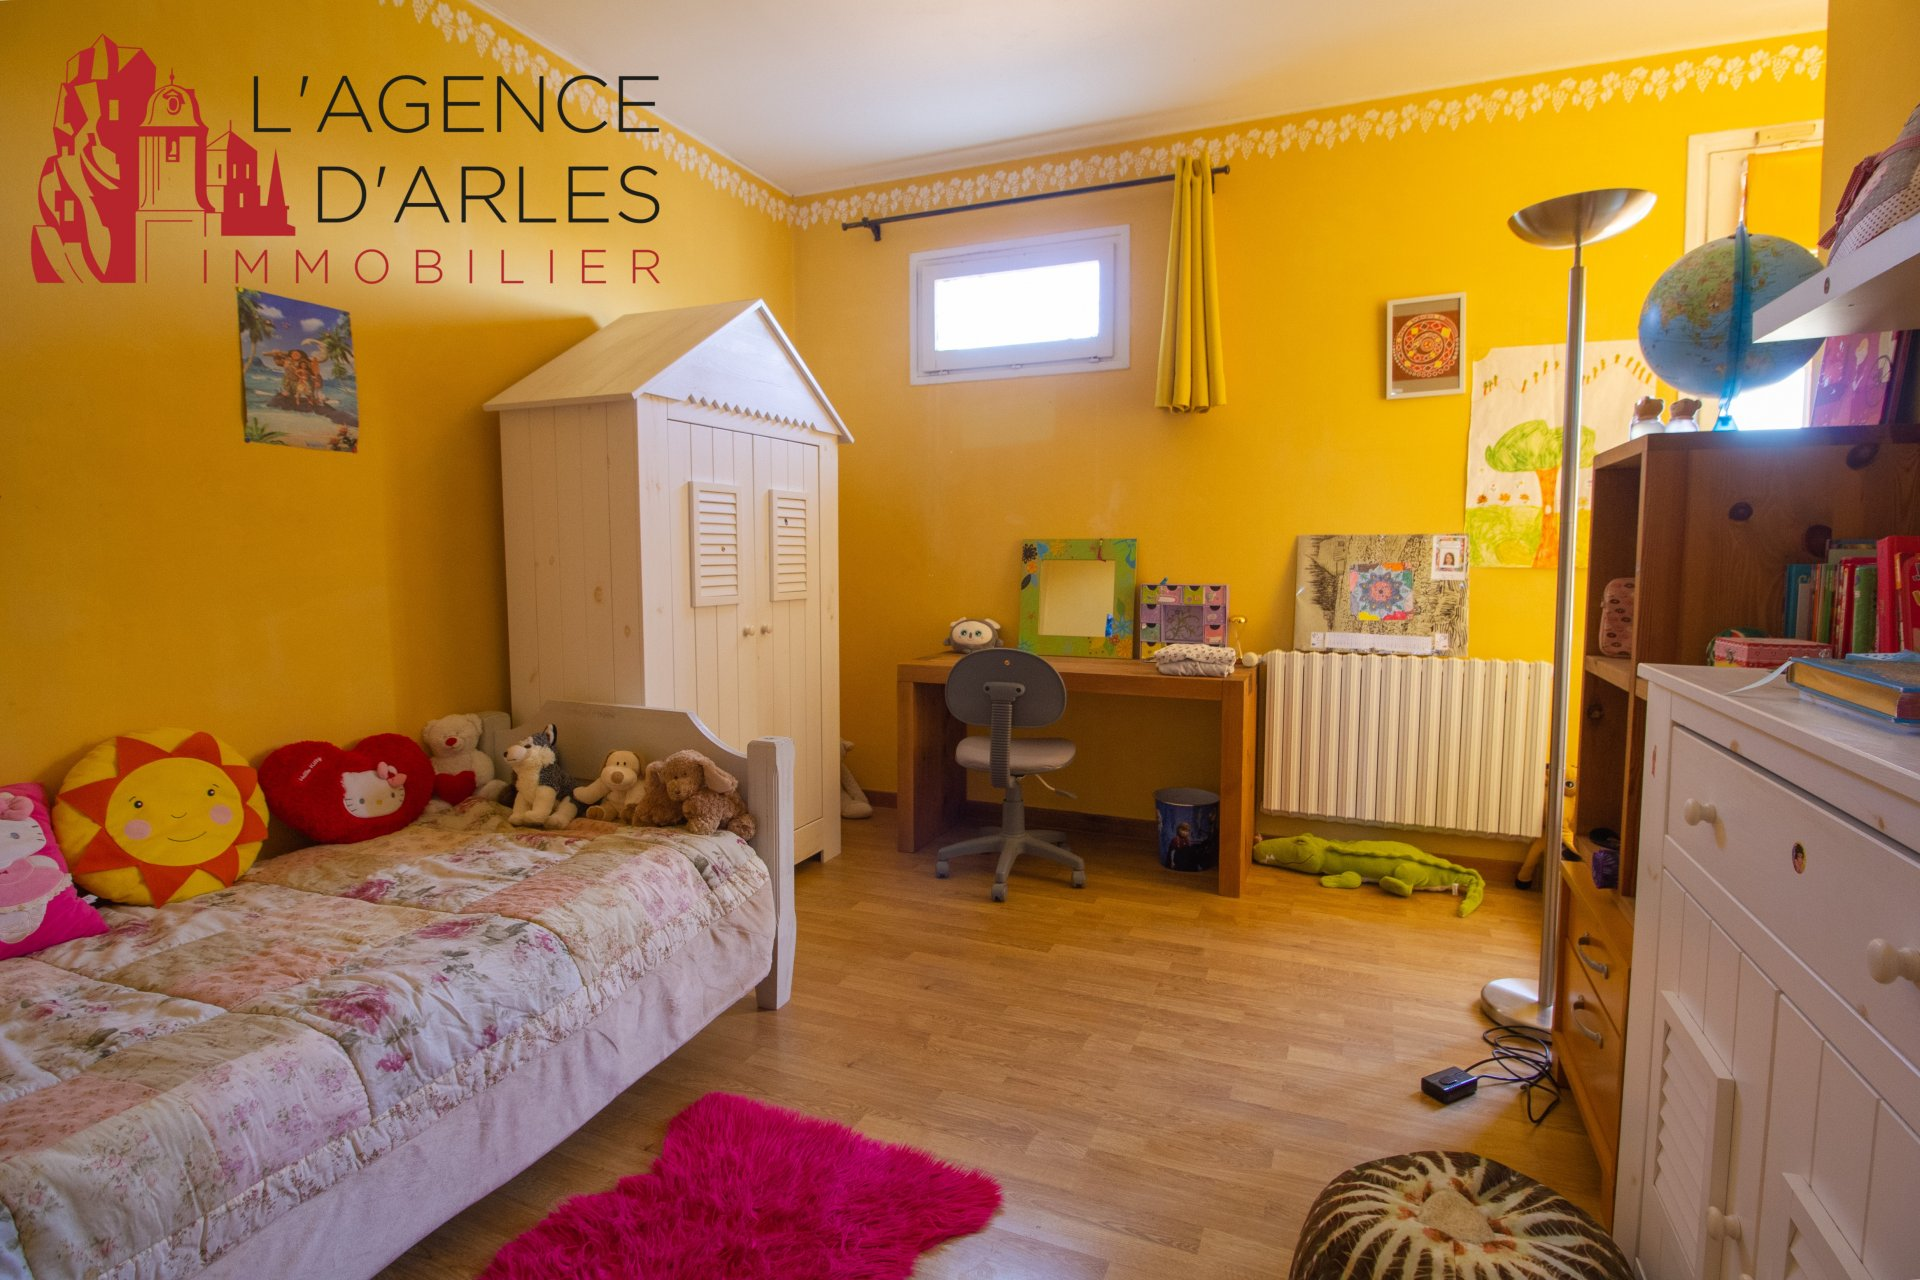 5 BEDROOM COUNTRY STYLE HOUSE NEAR ARLES WITH LARGE GARDEN